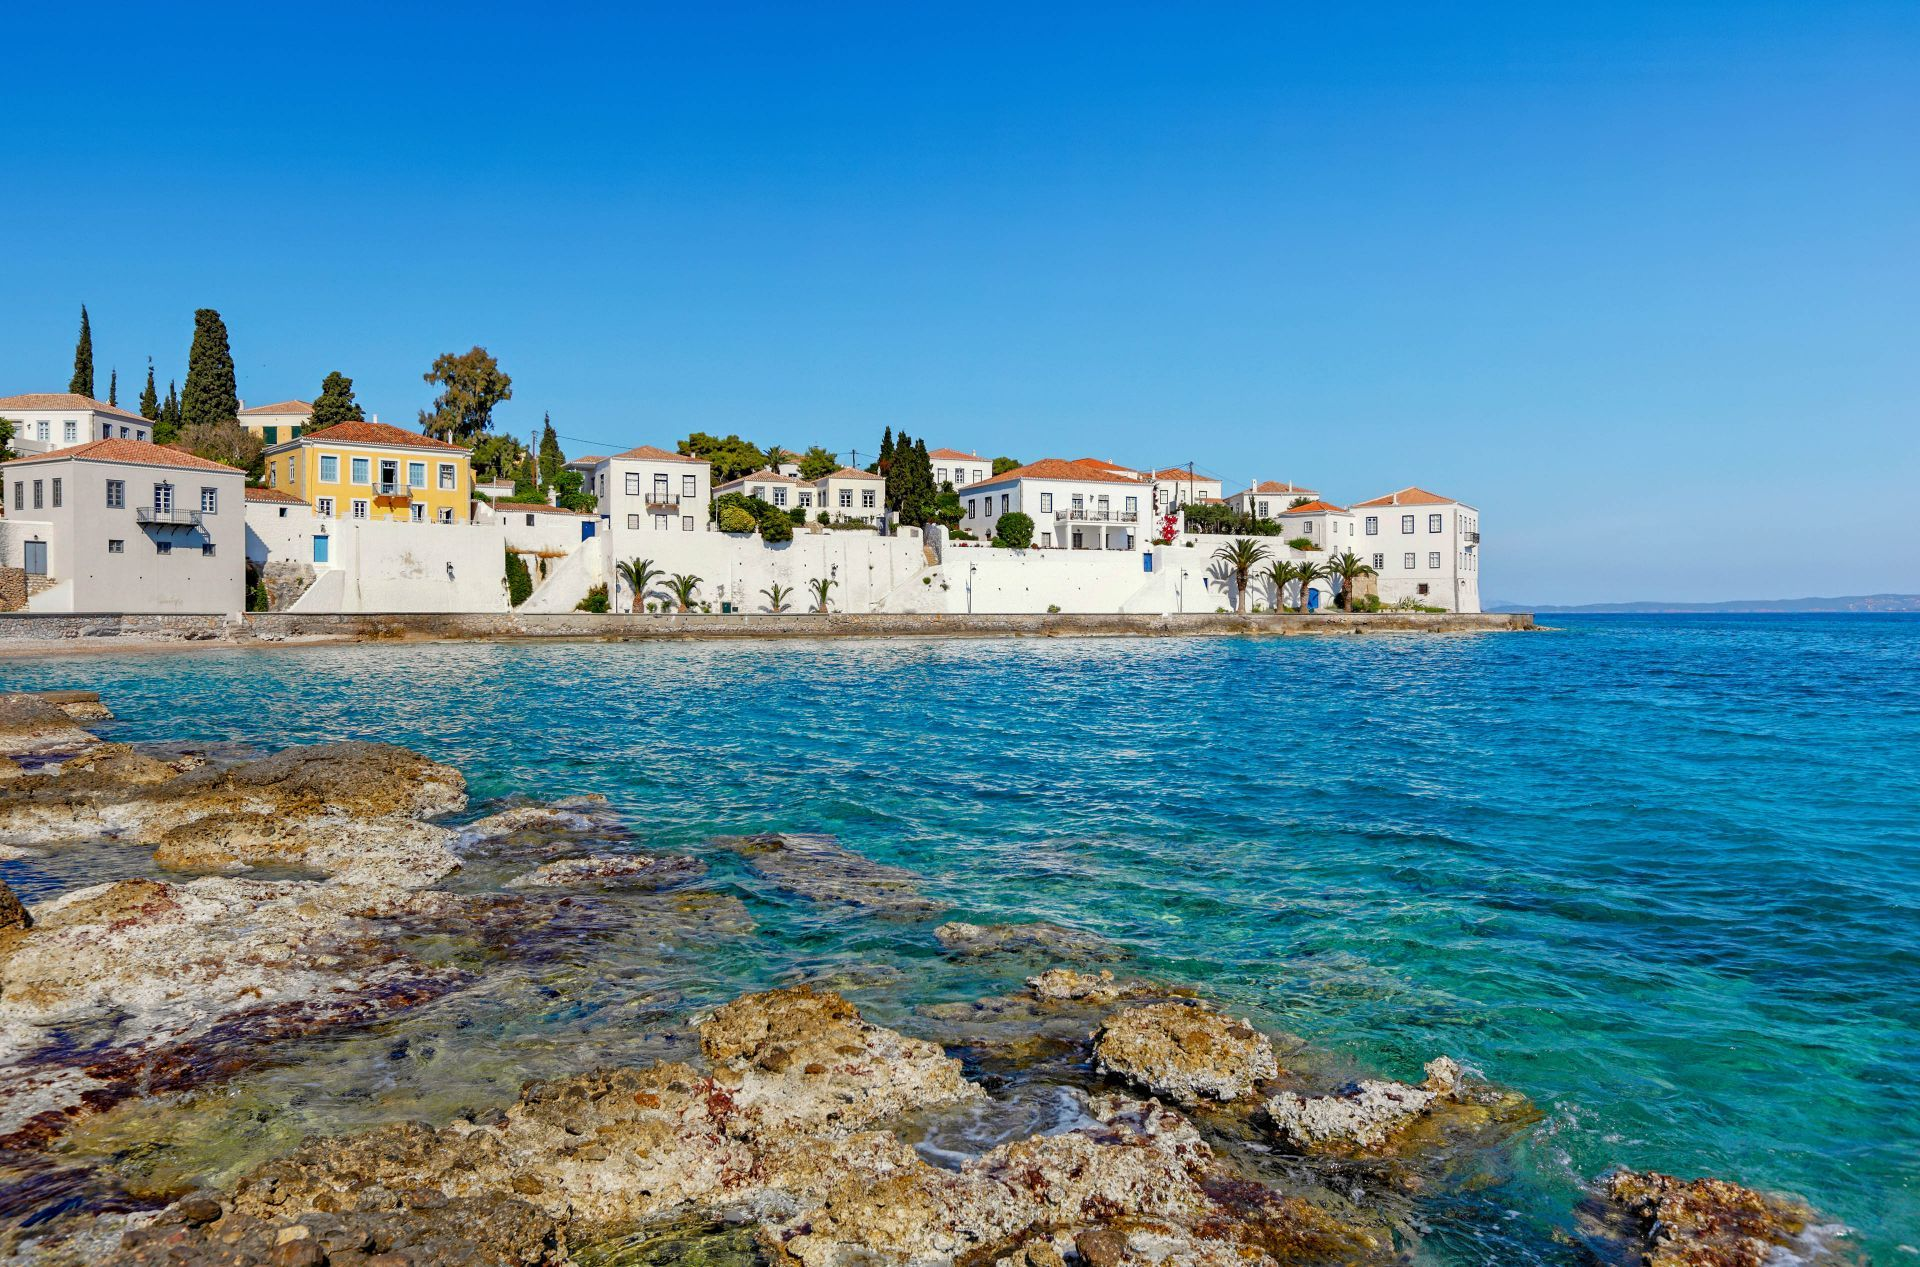 Saronic islands: The town of Spetses island